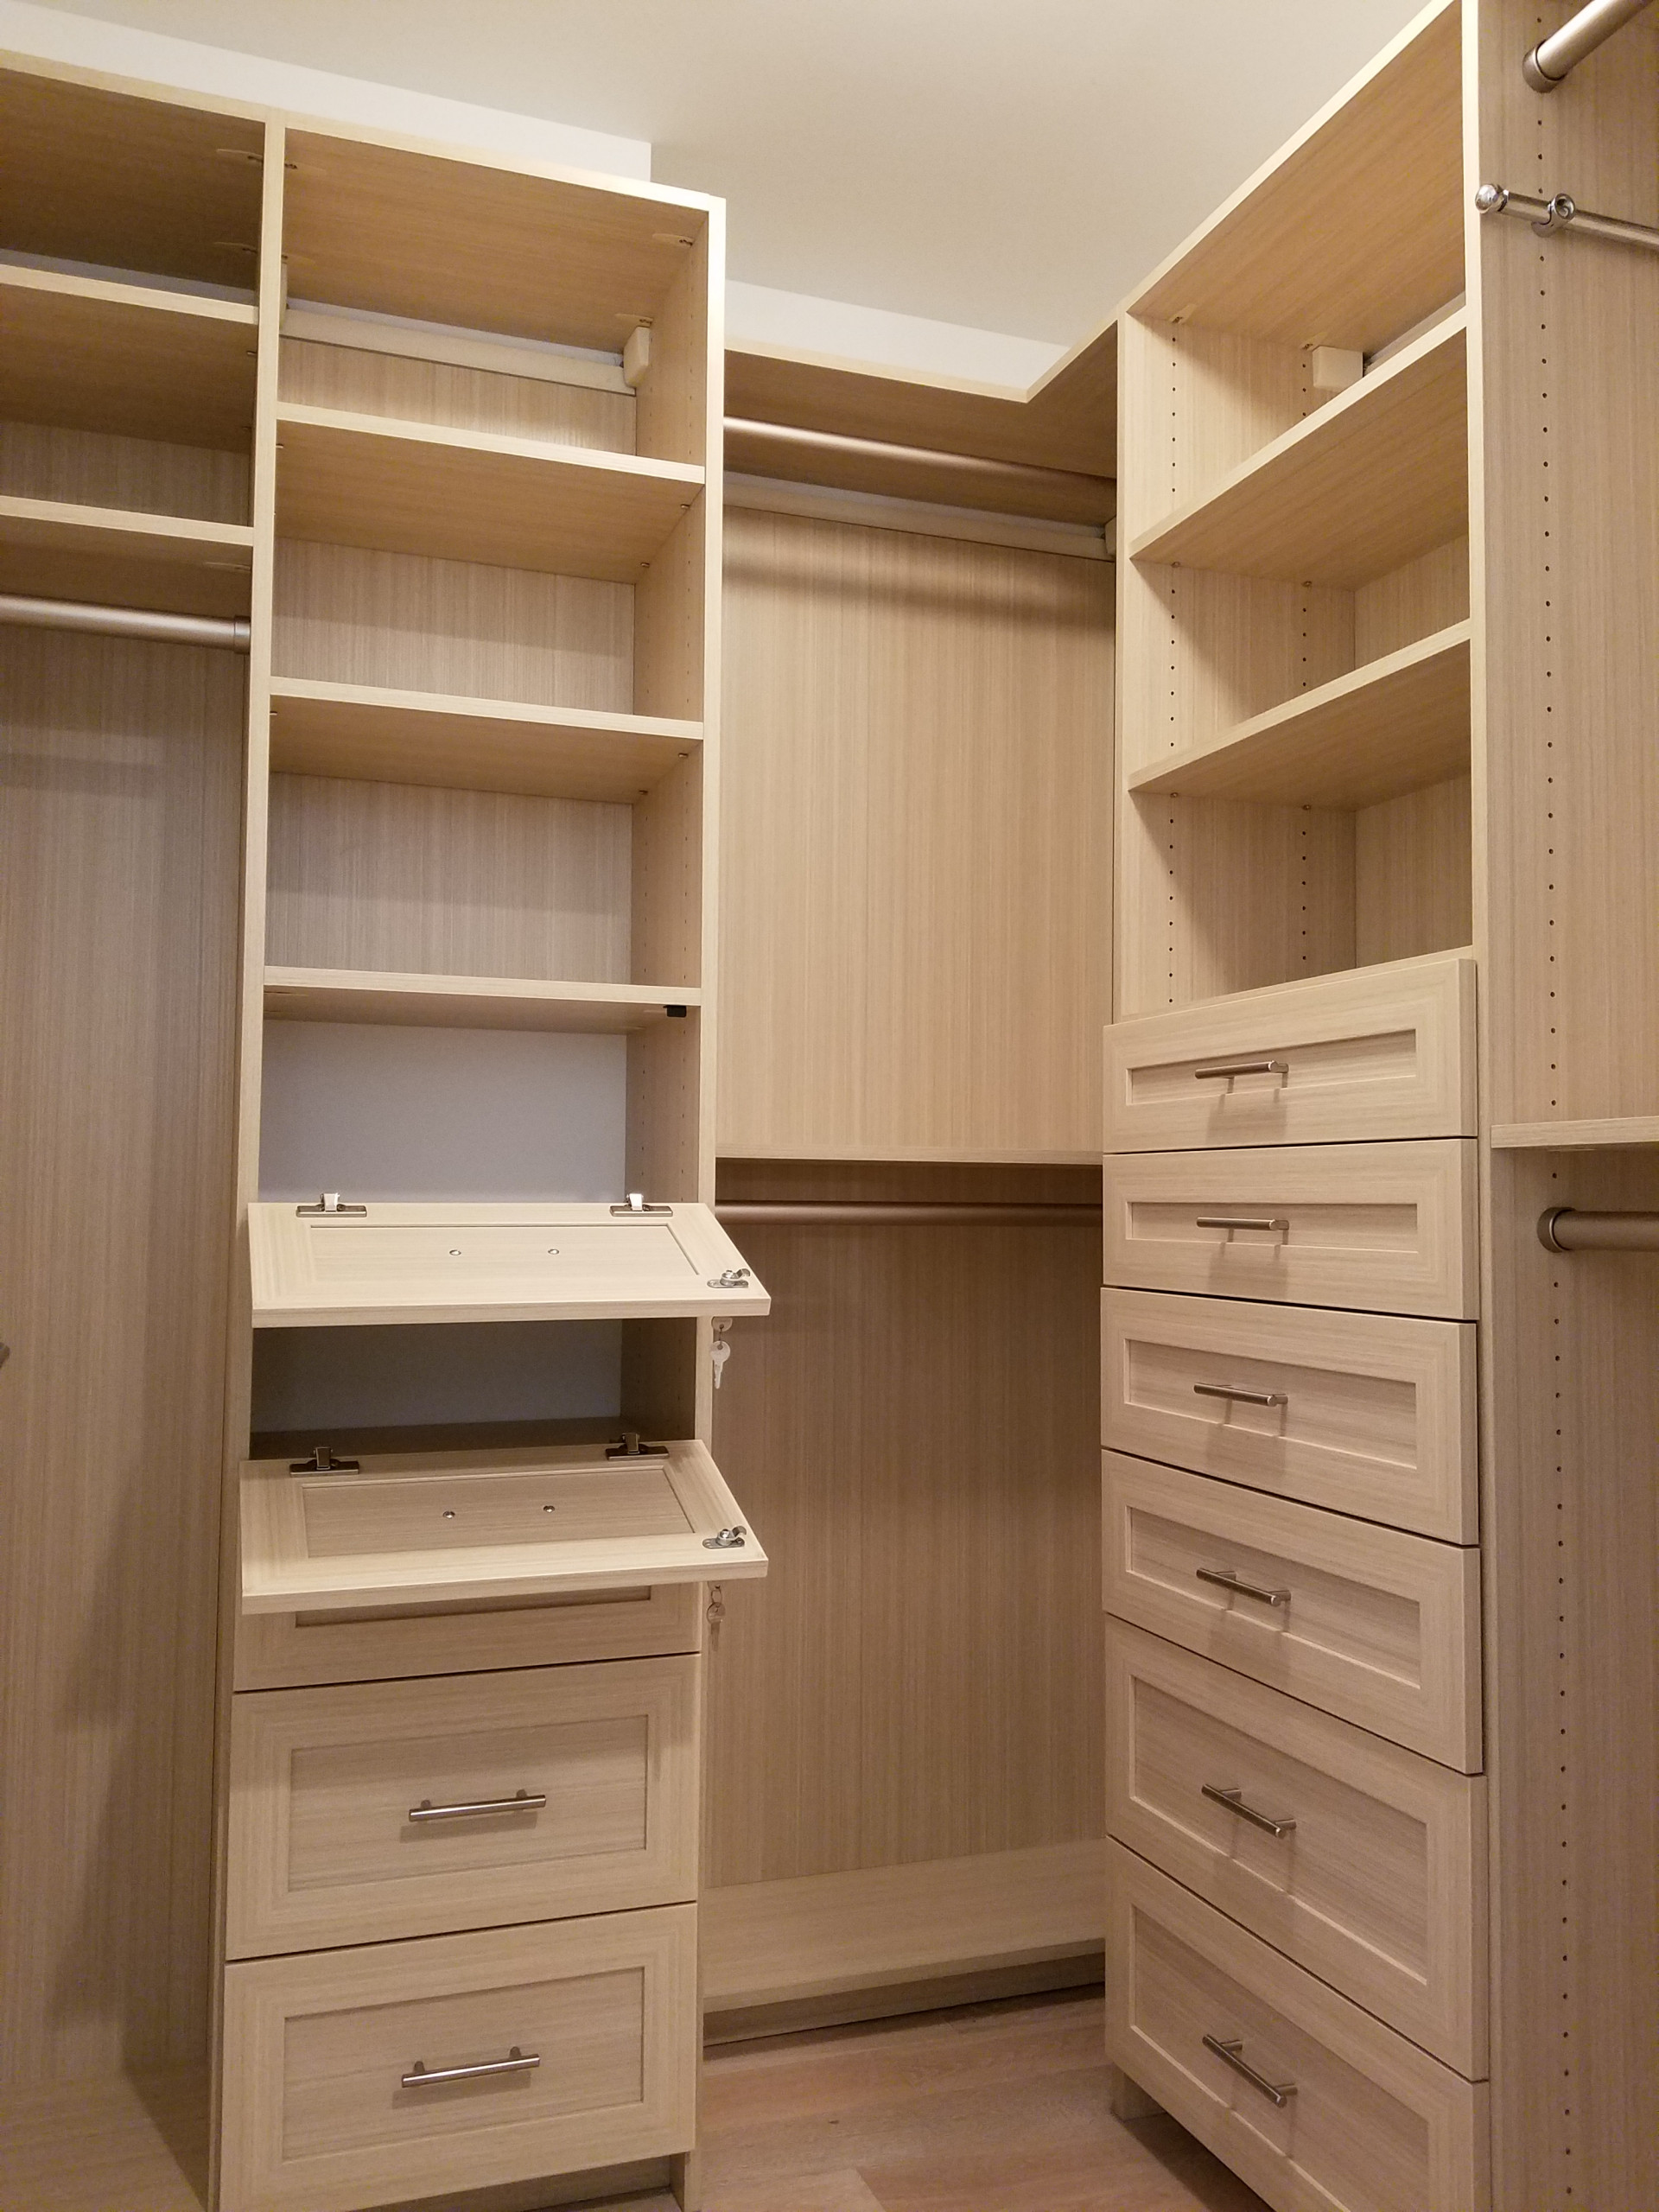 75 Beautiful Small Closet Pictures Ideas February 2021 Houzz